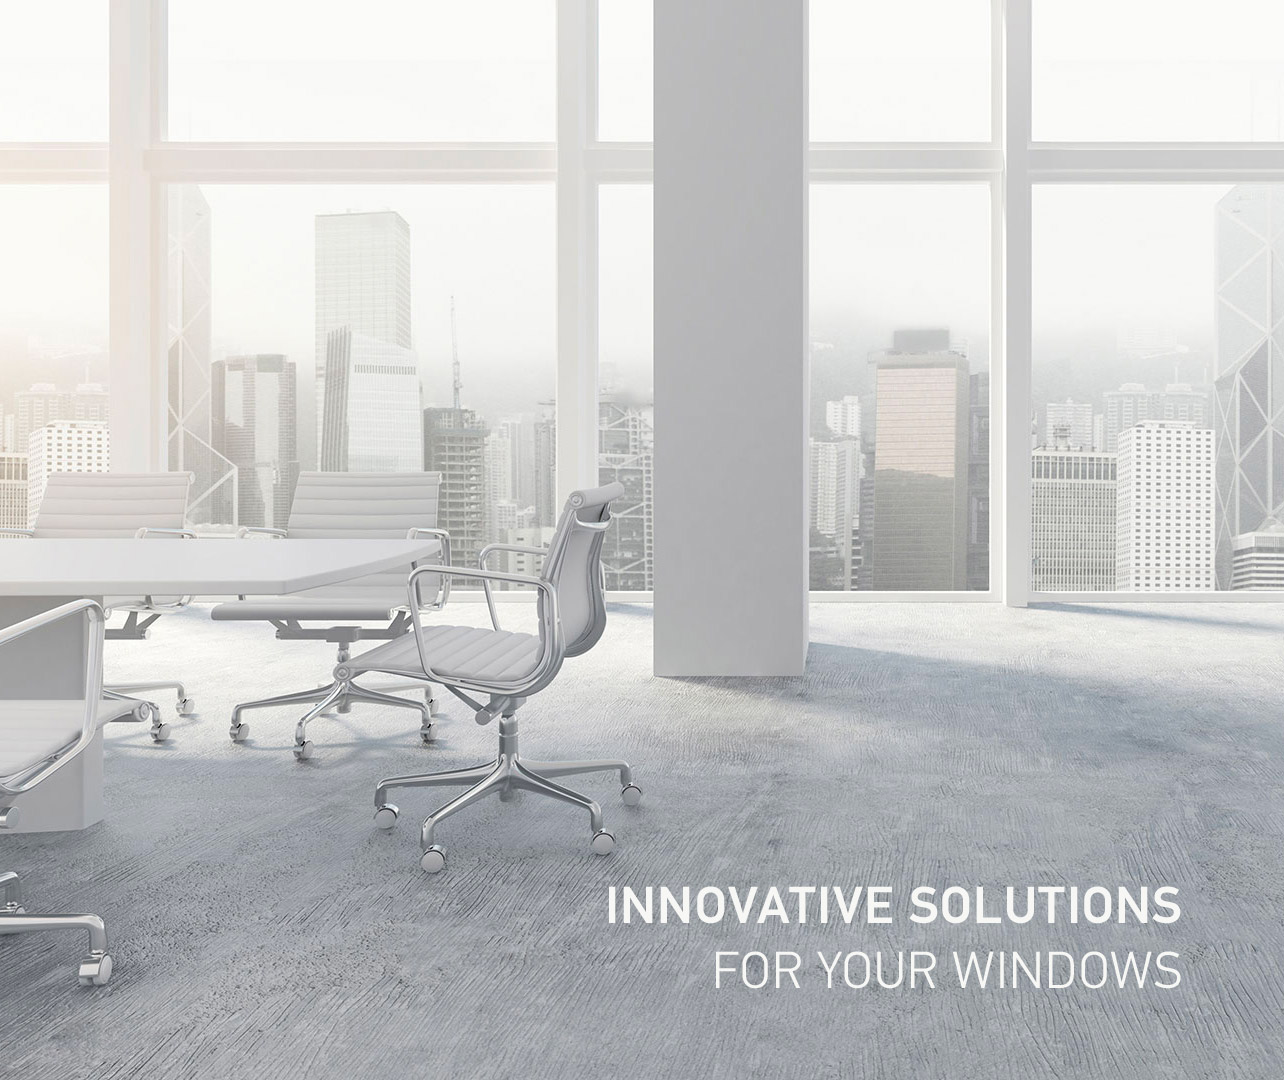 white-window-with-text2